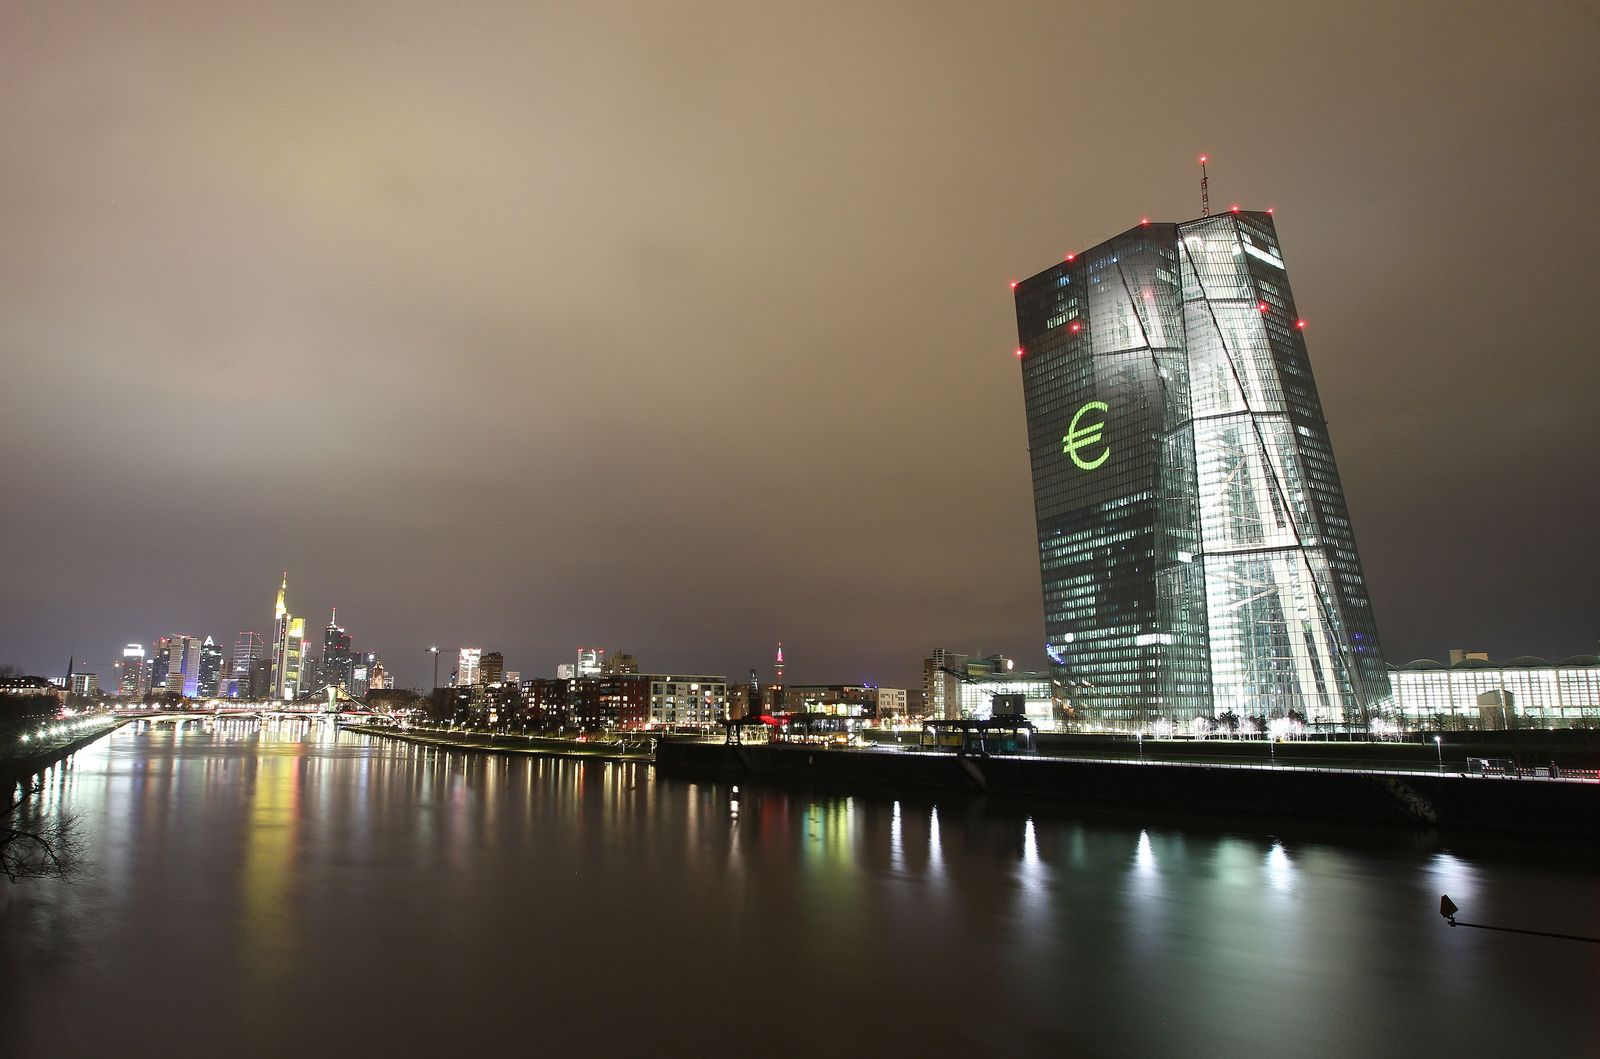 ECB Tower Frankfurt